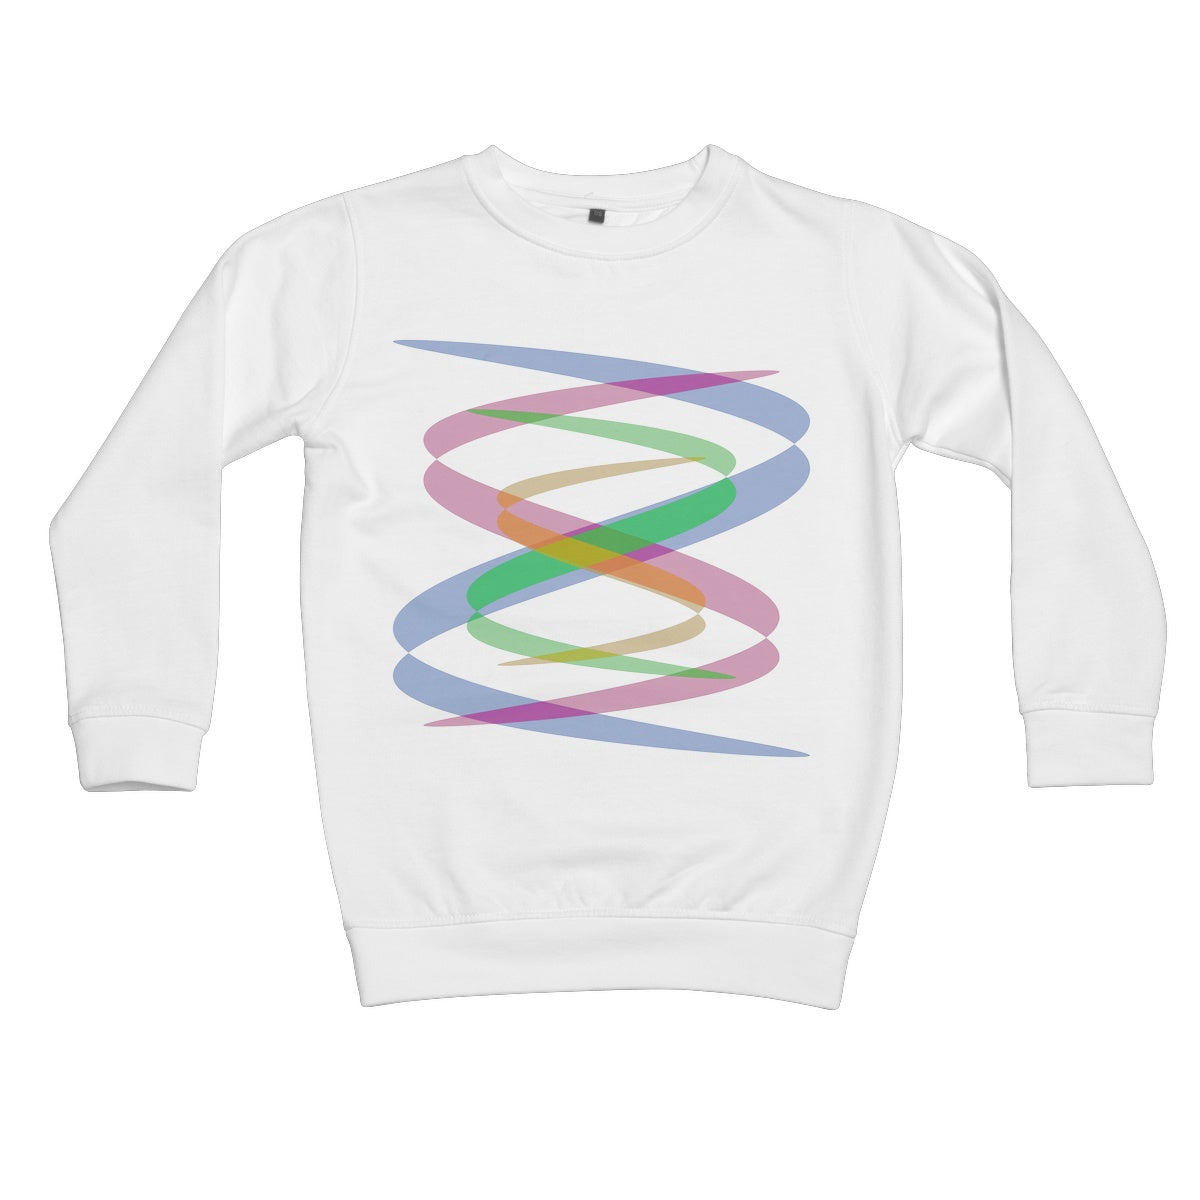 Lissajous Ribbons S38 - Kids Sweatshirt